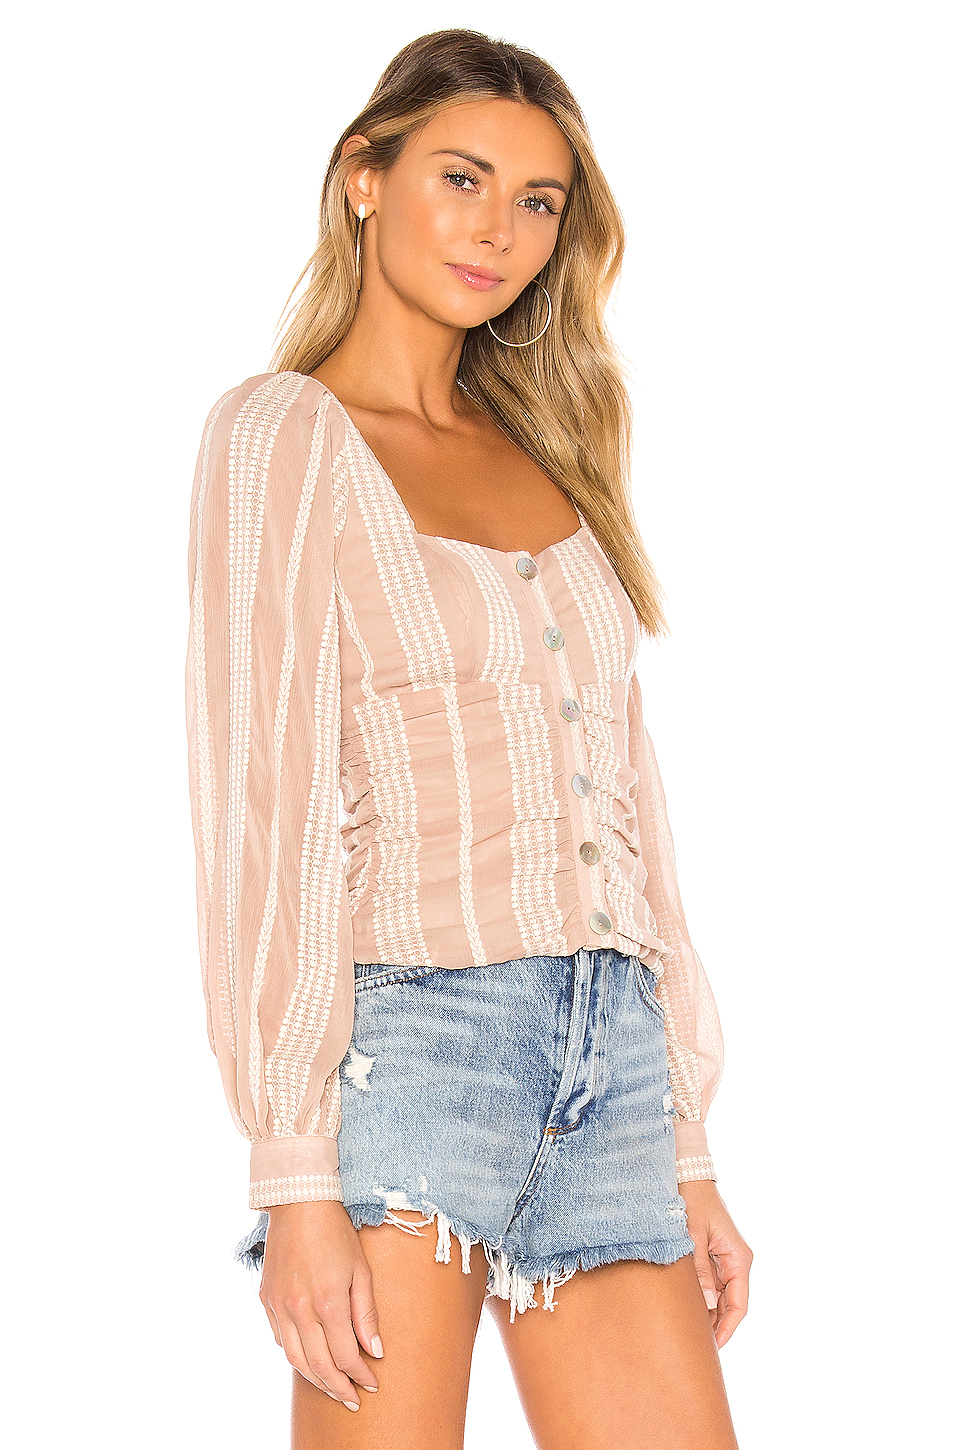 House of Harlow 1960 X REVOLVE Lourdes Top